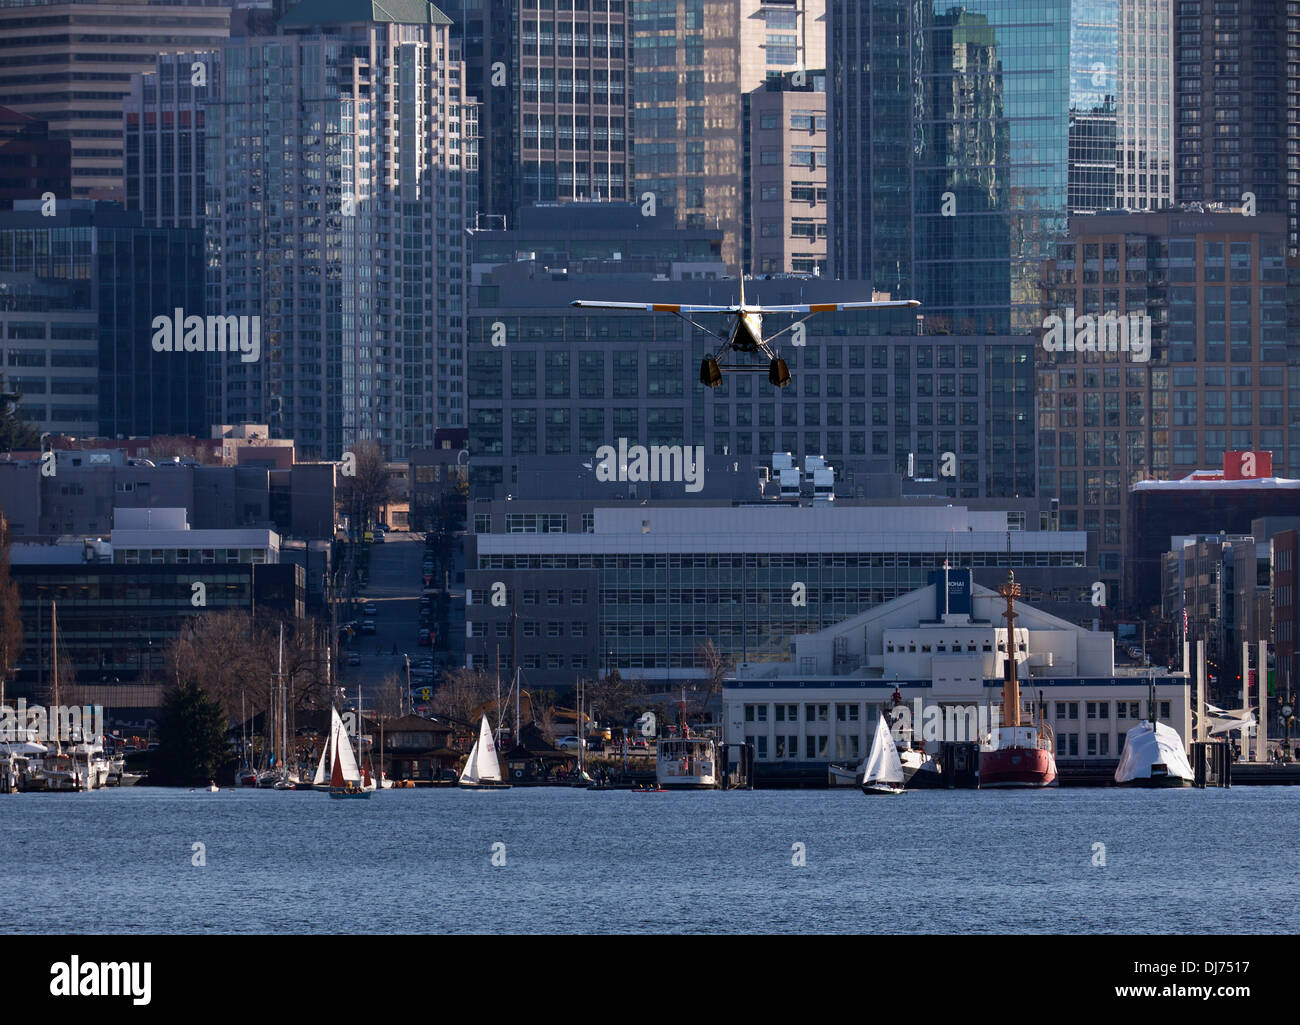 WASHINGTON - Kenmore Air seaplane on landing approach to Lake Union in Seattle. - Stock Image